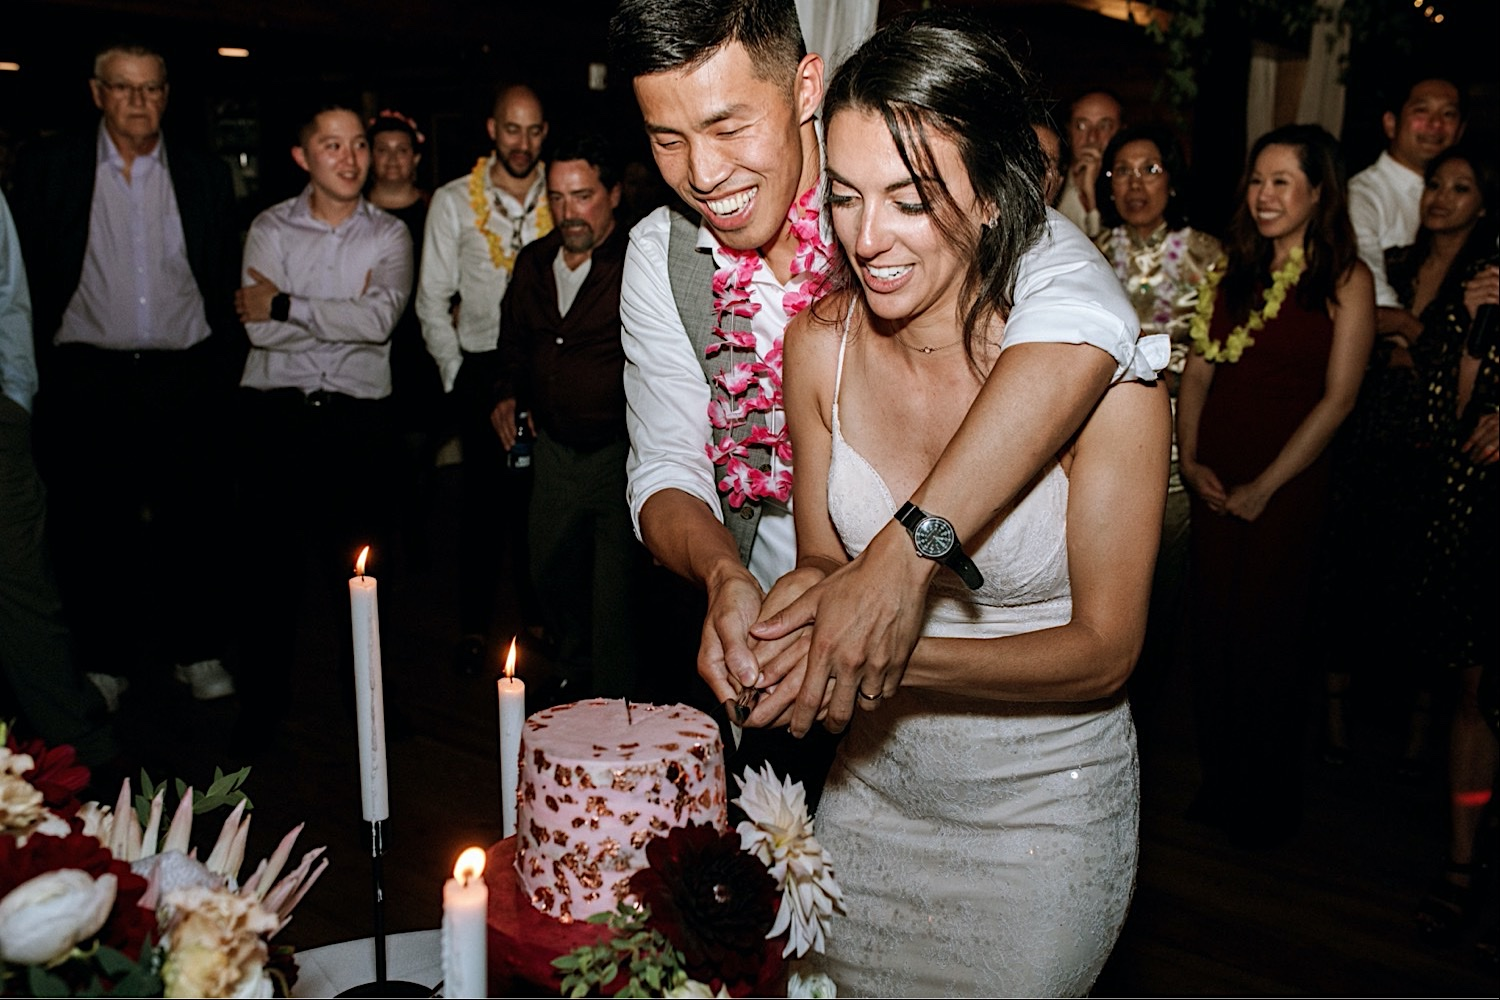 Bomoseen Lodge Wedding - Bride and Groom cut the cake wearing a lei